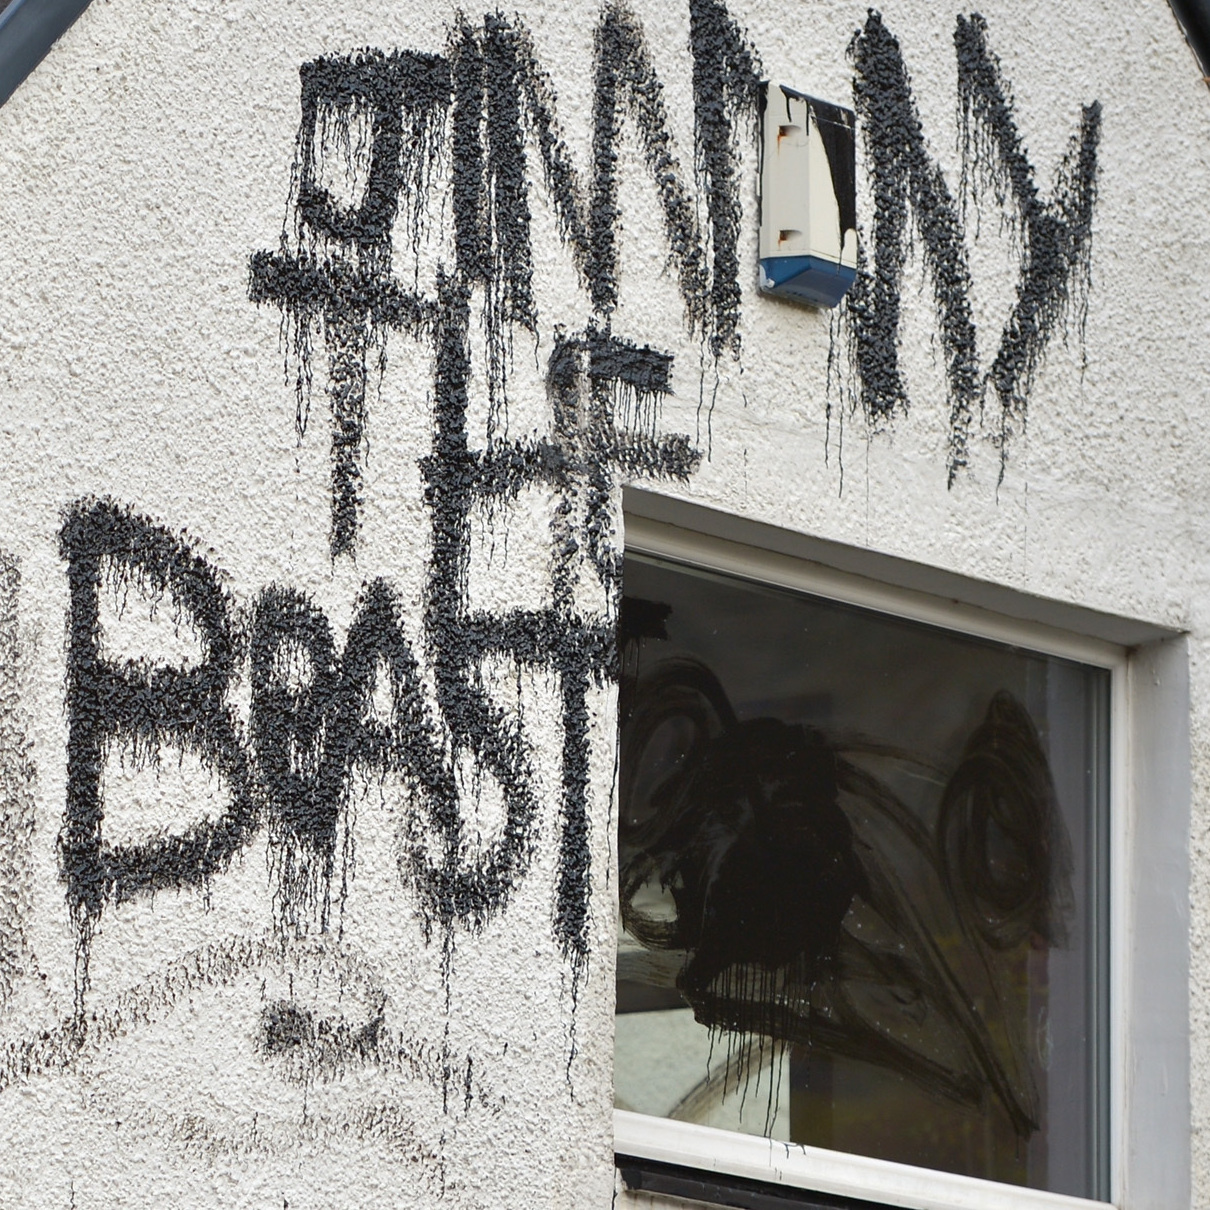 "After accusations of sexual abuse against late TV personality Jimmy Savile became public last October, messages were spray-painted on his Scottish cottage, calling him a ""beast."" Police say the house was one of ""the main premises"" where the abuses took place."